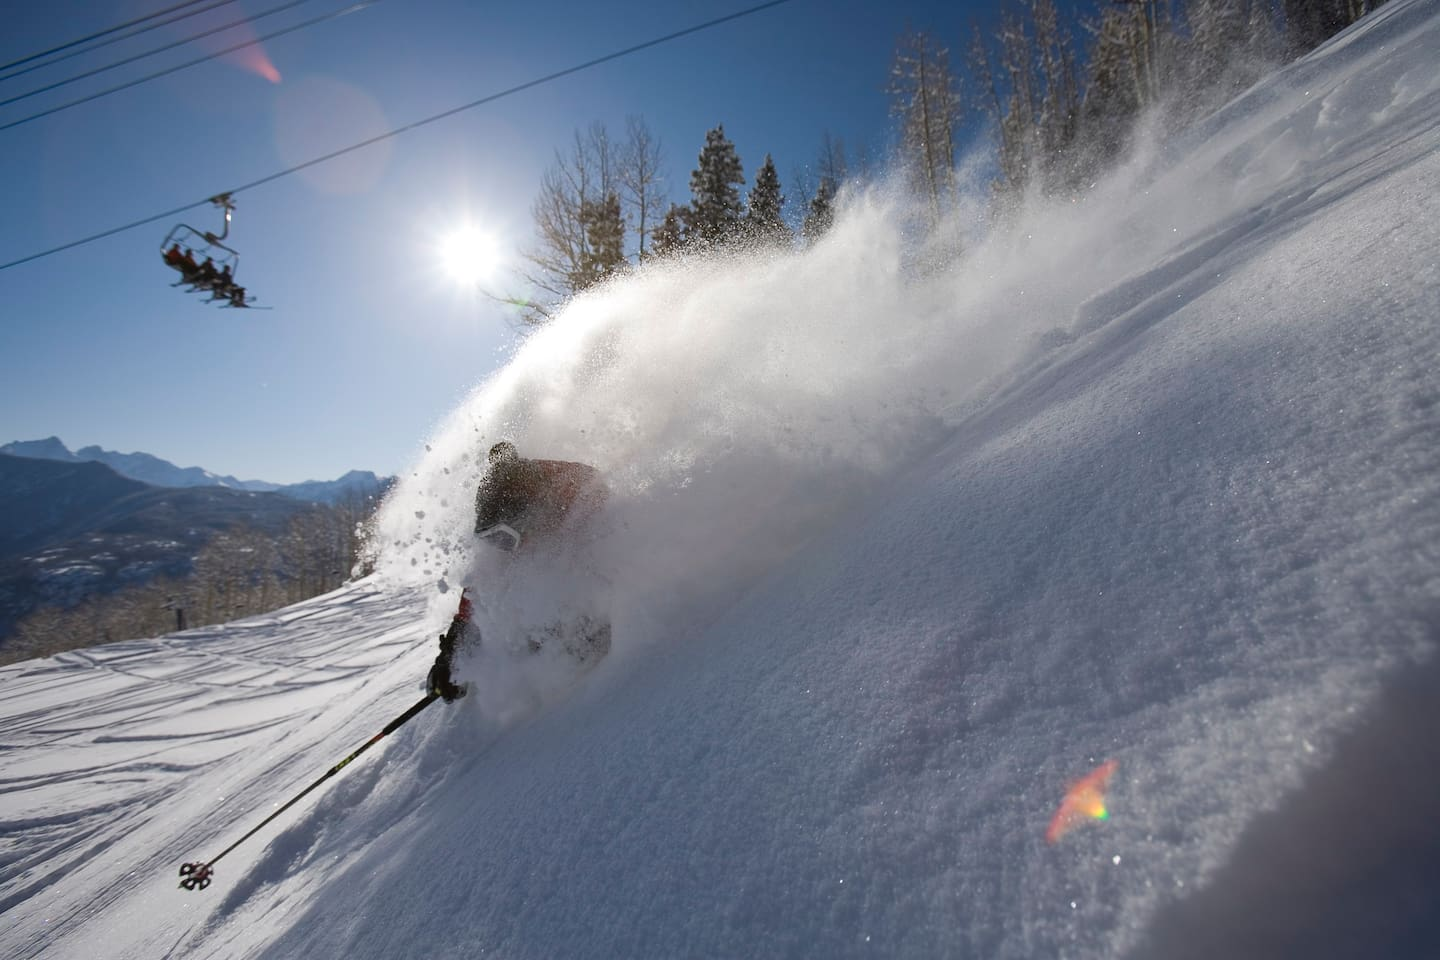 Relish a town voted one of the best ski venues in the US!